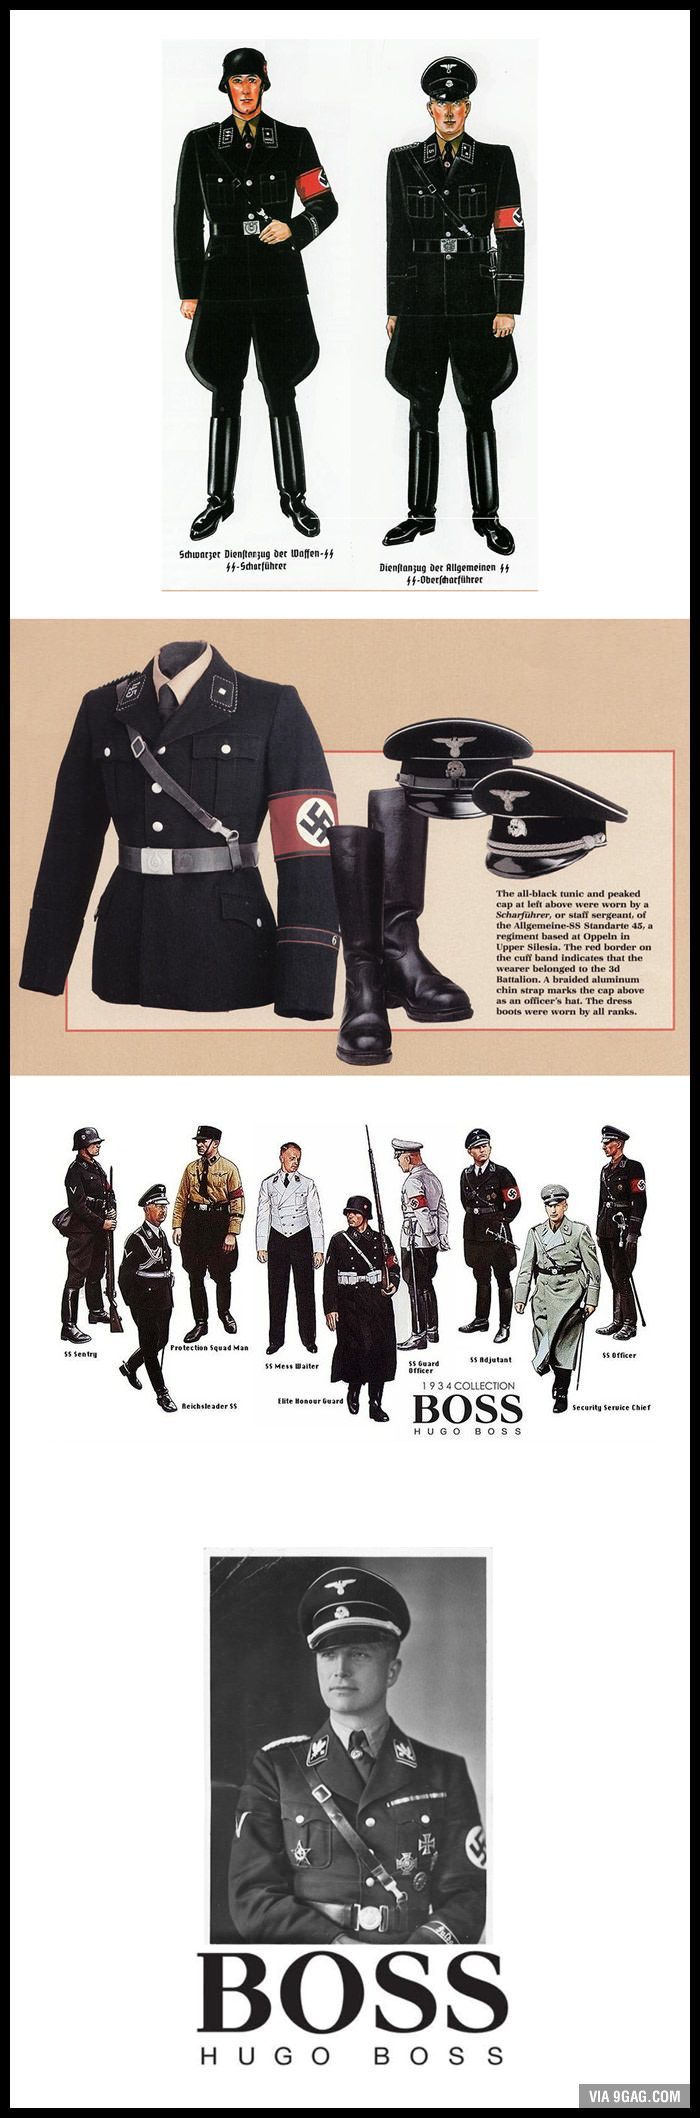 "Hugo Boss designed the Nazi uniforms. He was stripped of his voting rights and fined ""a very heavy penalty"" of 100,000 DM (USD 70,553)."